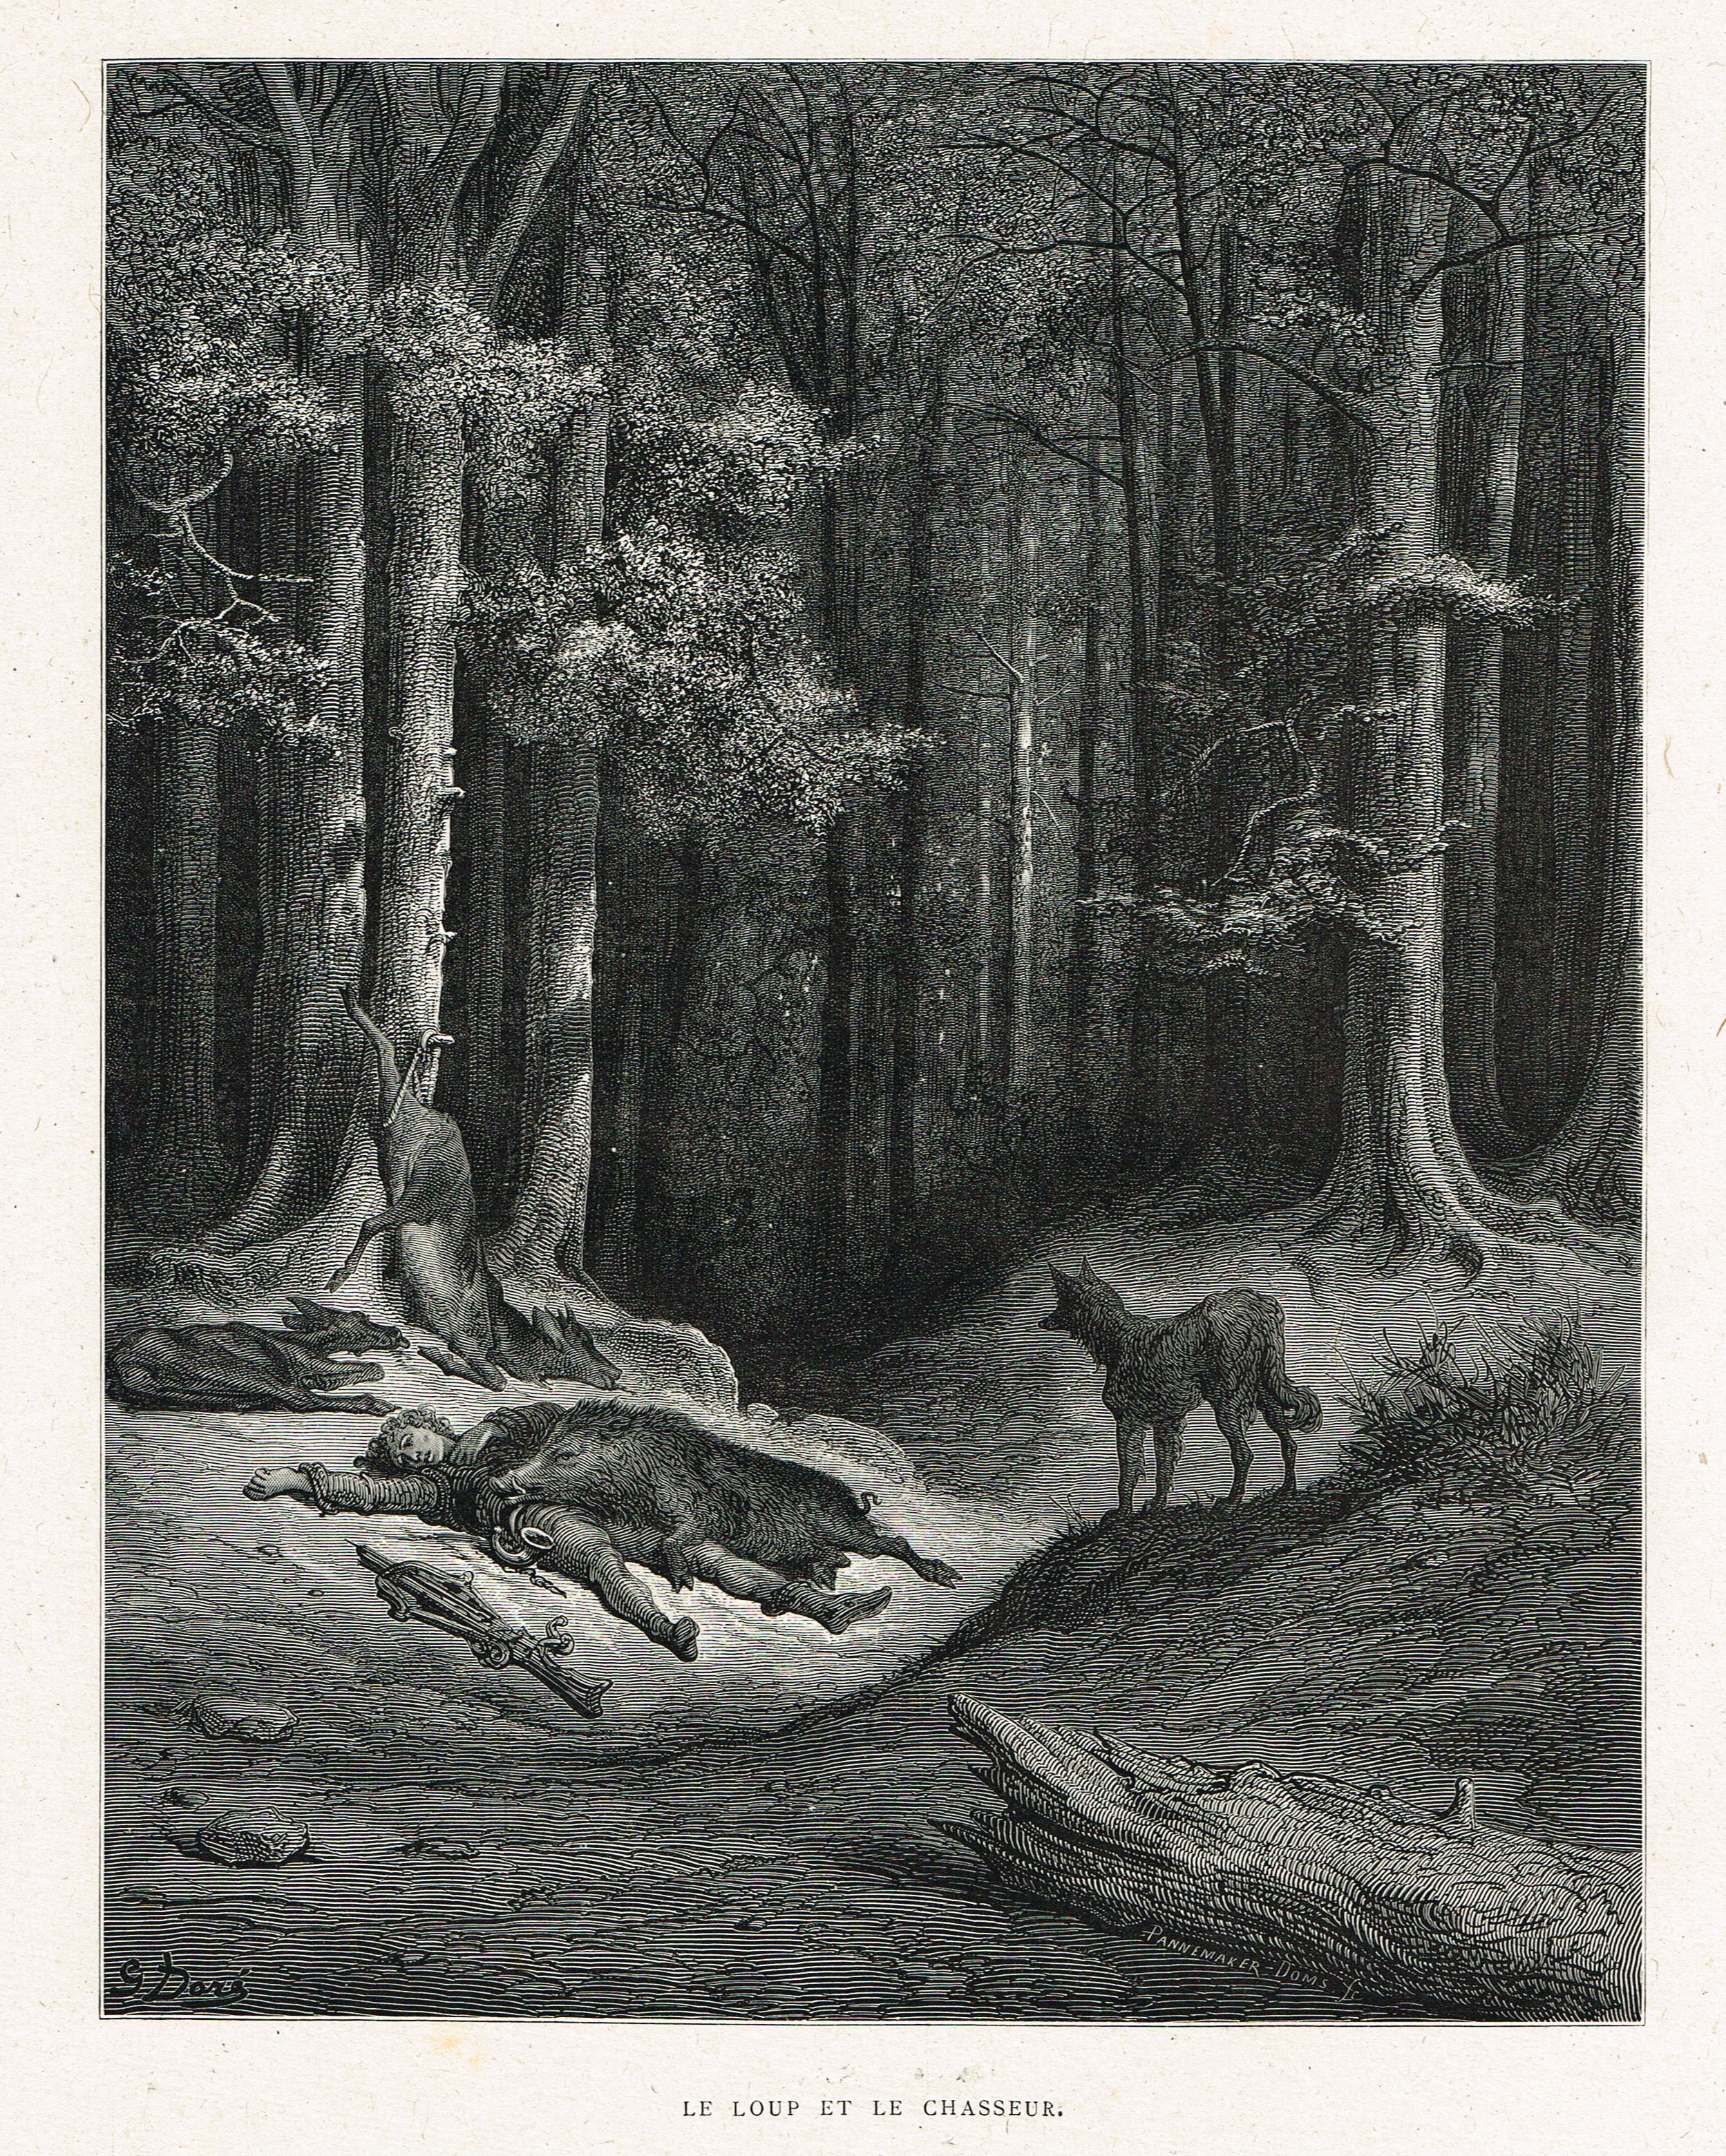 Le Loup Et Le Chasseur Fable De Jean De La Fontaine Illustree Par Gustave Dore Mas Estampes An Dungeons And Dragons Art Literature Art Fantasy Illustration